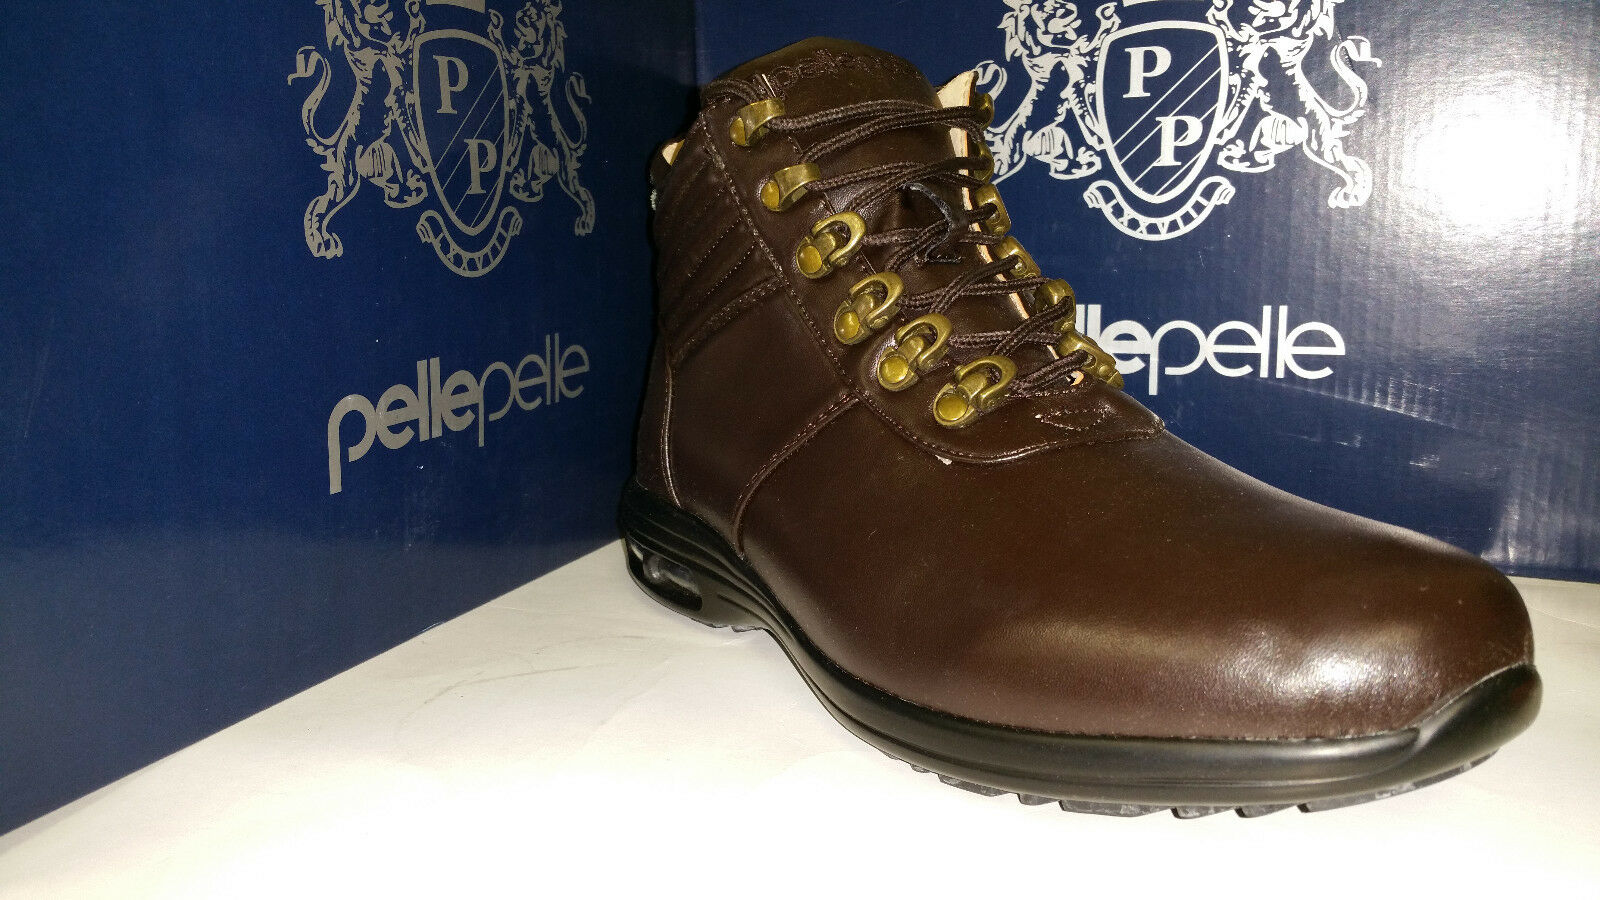 Pelle Pelle Men's Brown Leather Lace Up High Top Boots Size 7.5-12